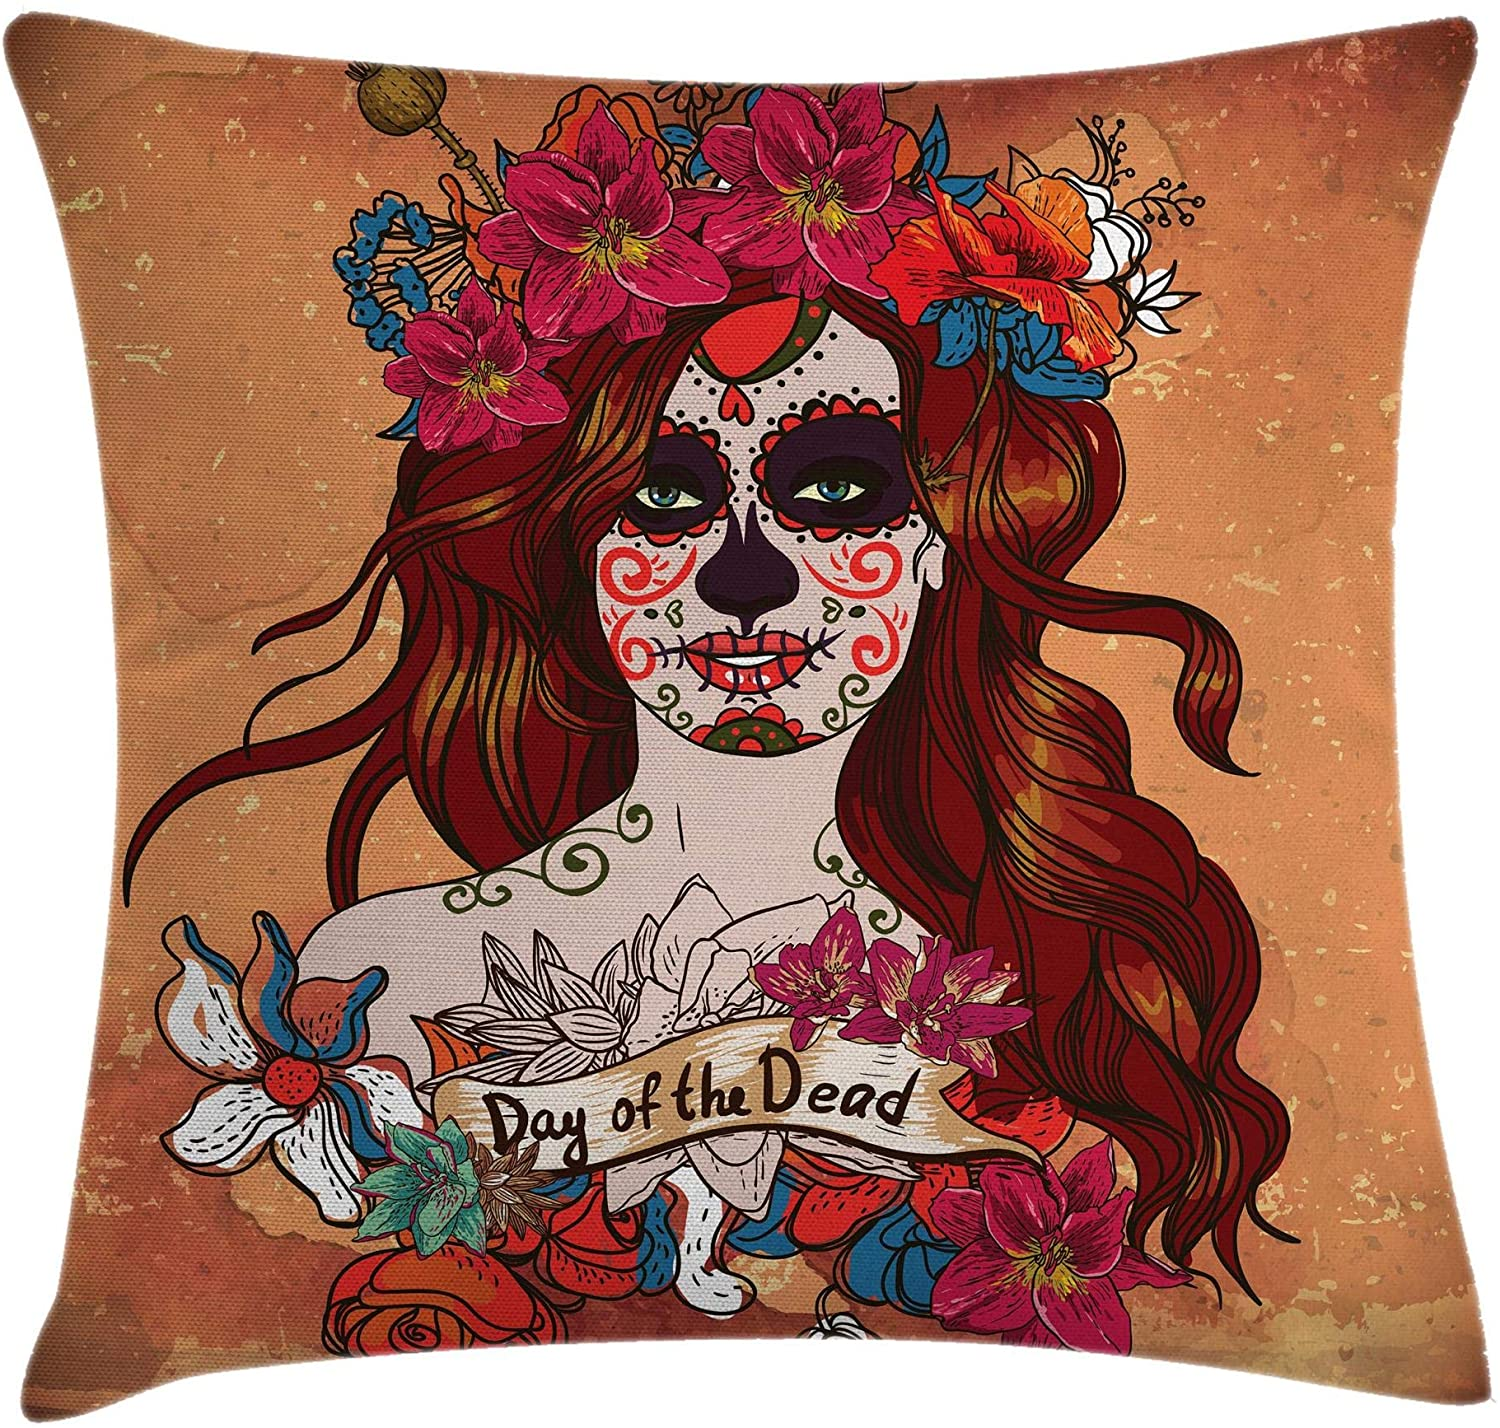 Ambesonne Day of The Dead Throw Pillow Cushion Cover, Dia de Los Muertos Spanish Culture Mexican Skull Art, Decorative Square Accent Pillow Case, 16